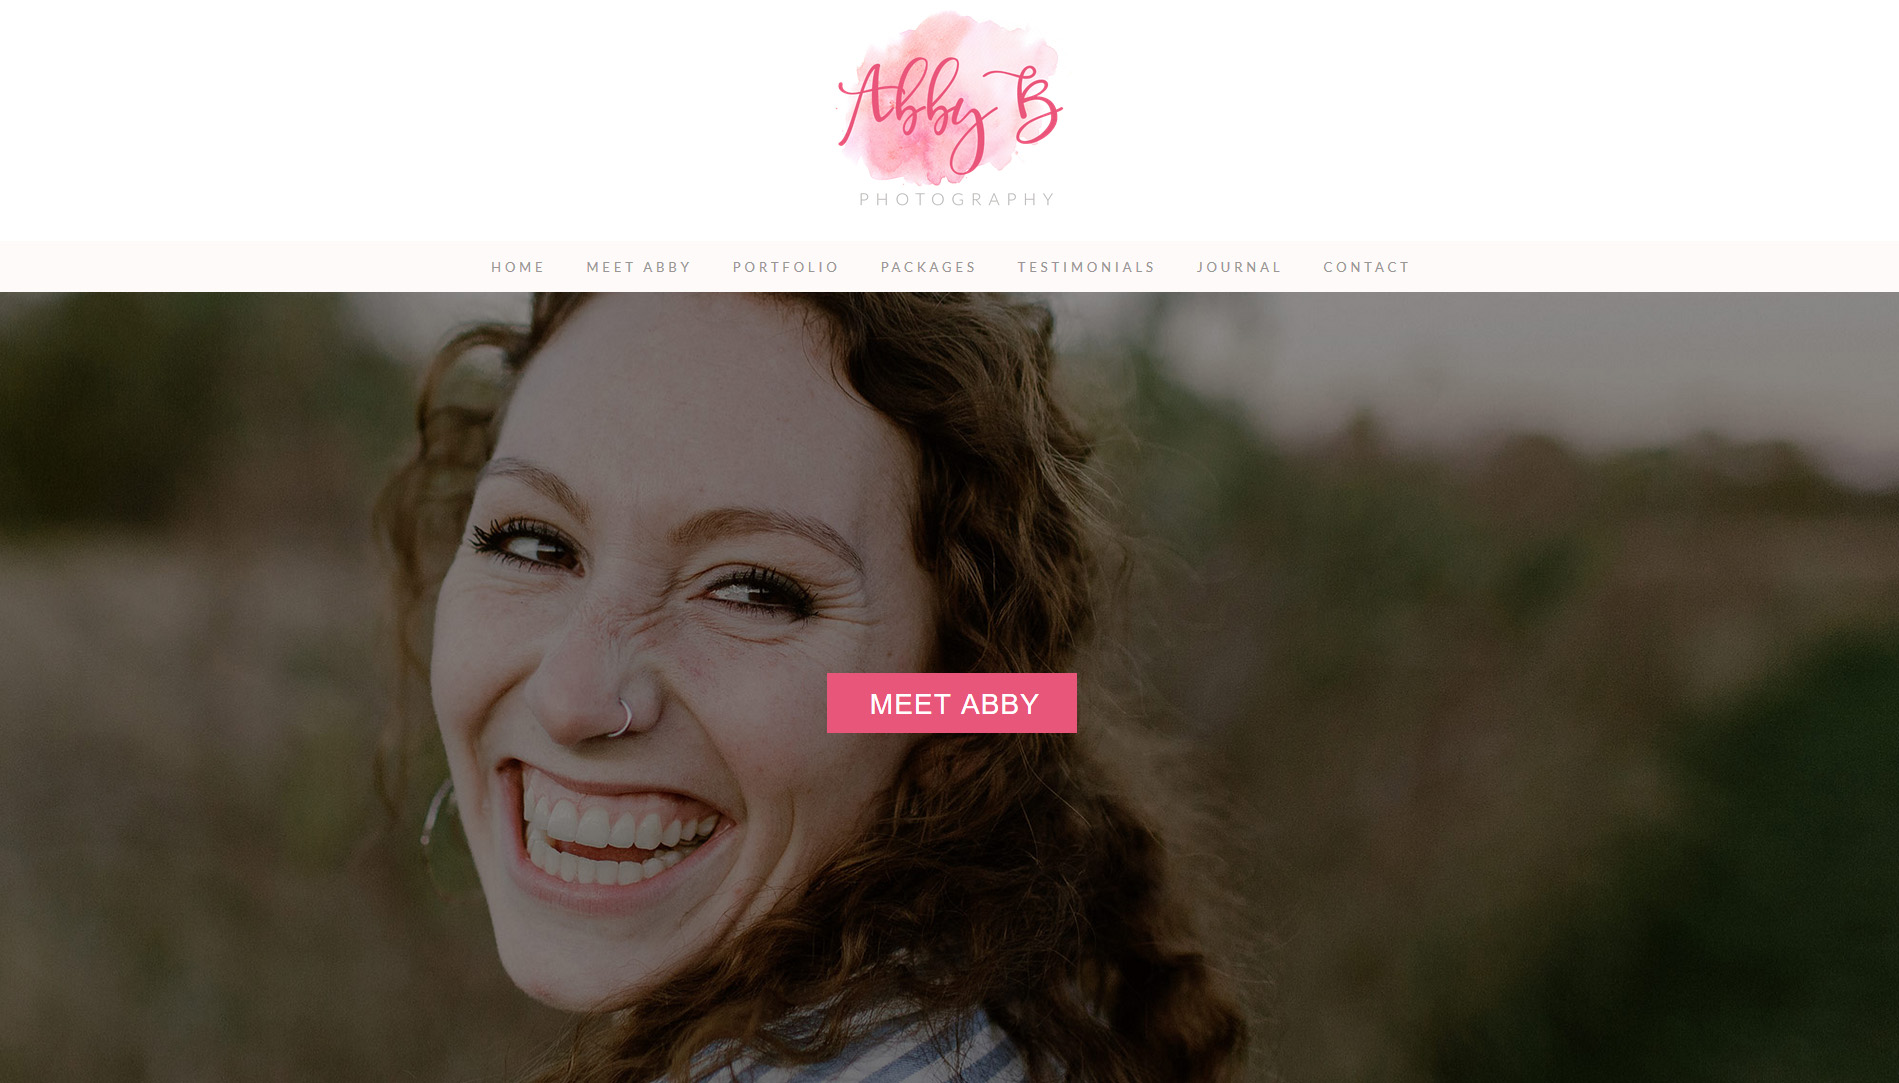 about the photographer - website design